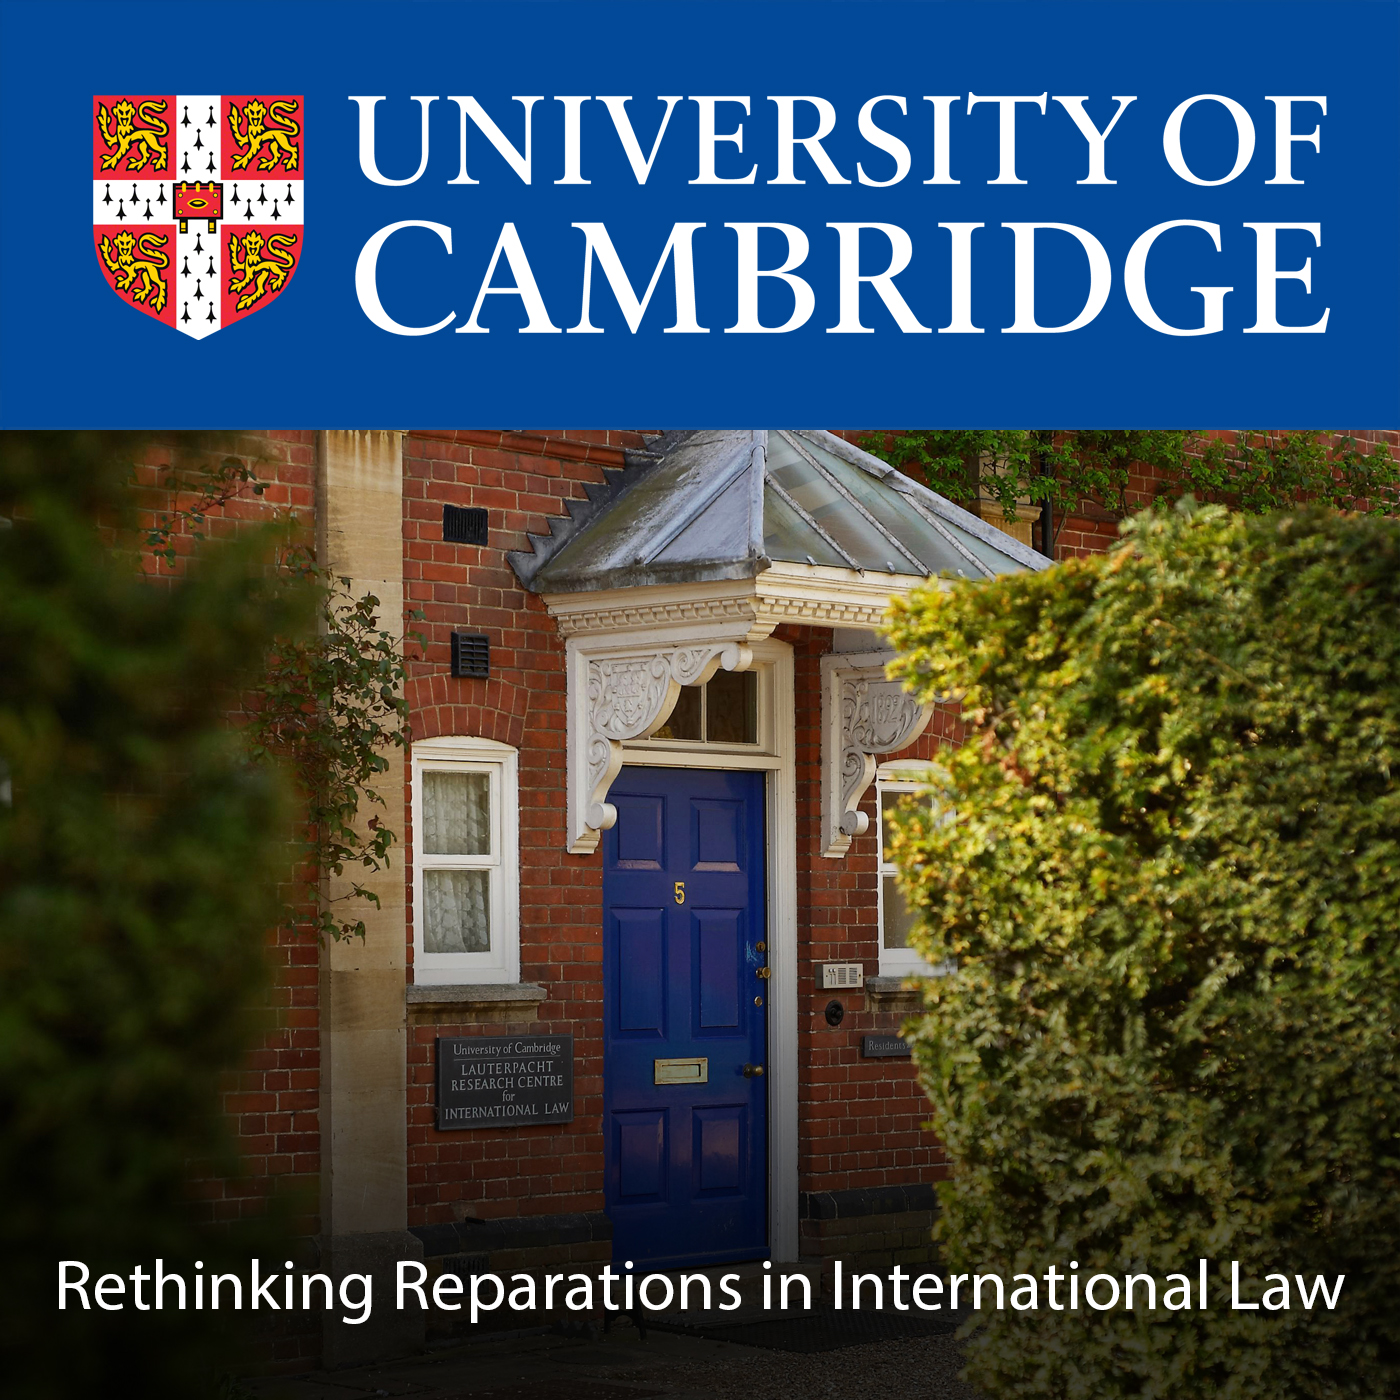 Rethinking Reparations in International Law's image